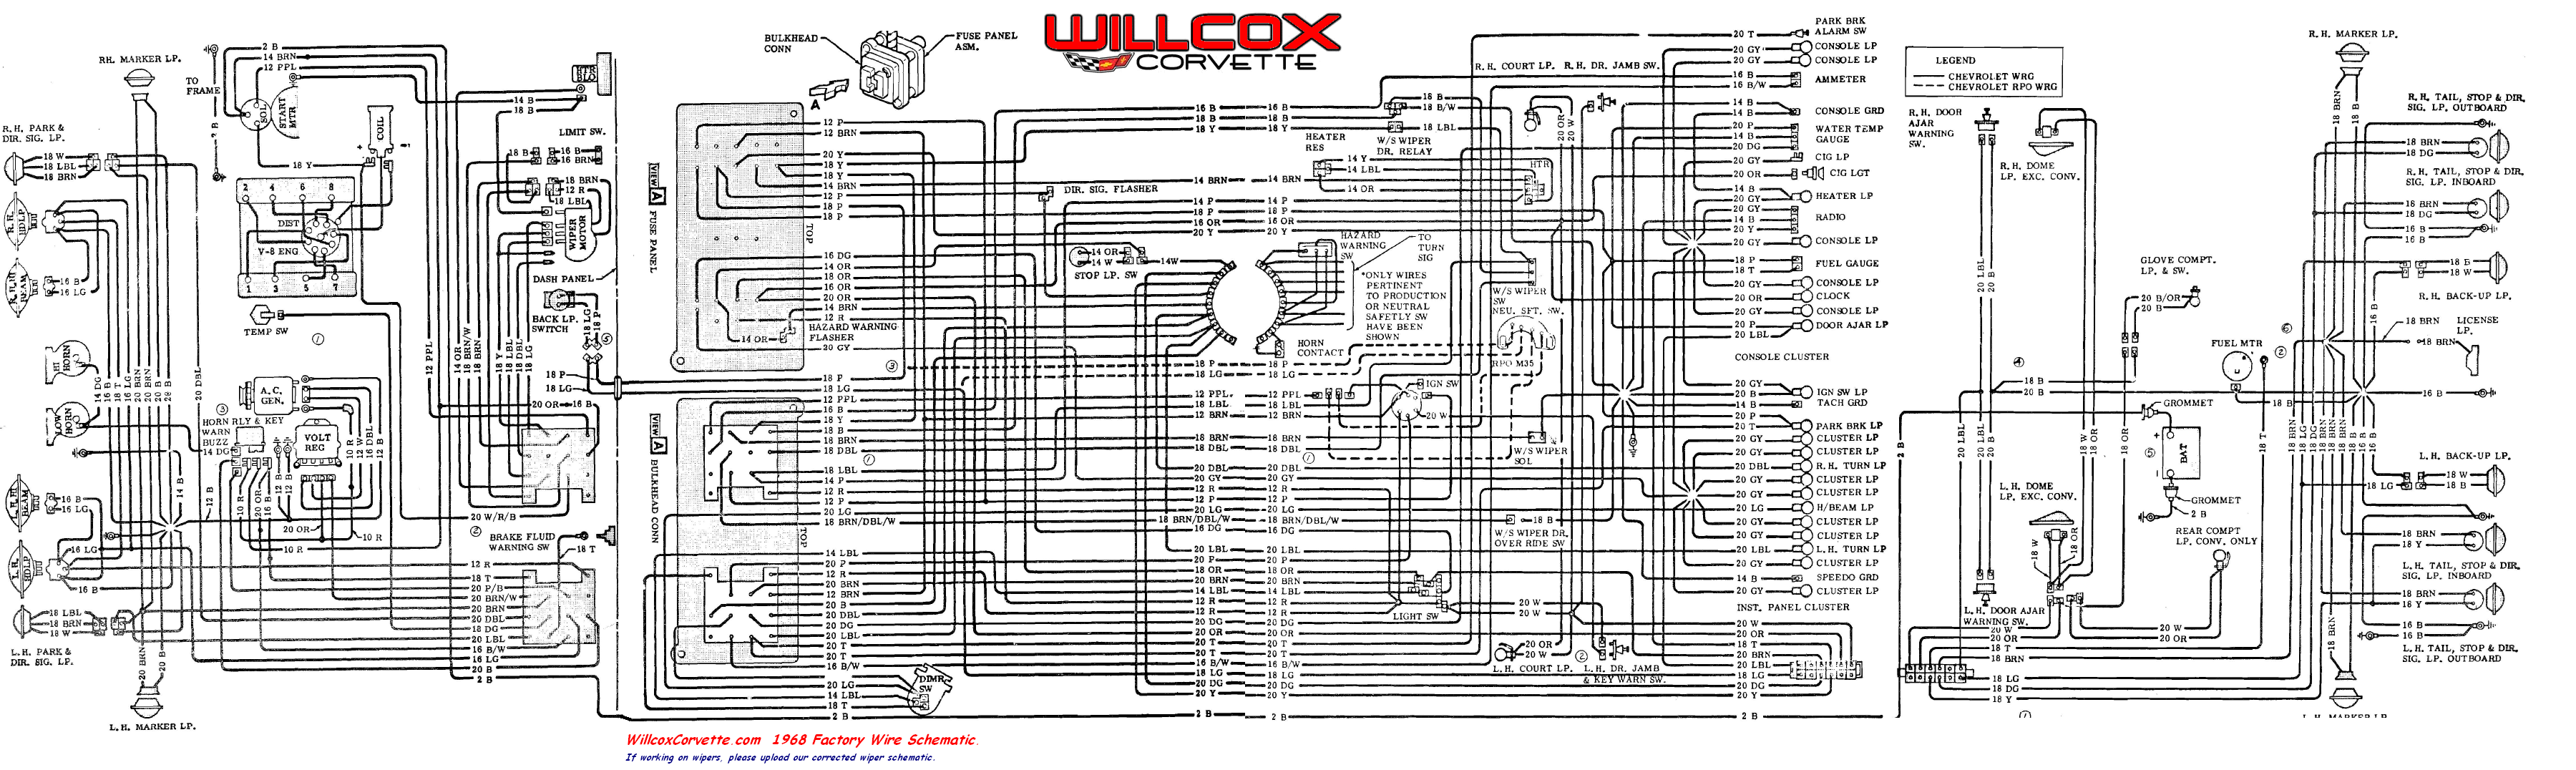 1968 Corvette Wiring Diagram (tracer schematic) | Willcox ... on jaguar mark x, jaguar exhaust system, 2005 mini cooper parts diagrams, jaguar shooting brake, dish network receiver installation diagrams, jaguar gt, jaguar xk8 problems, jaguar mark 2, jaguar 2 door, jaguar wagon, jaguar rear end, jaguar fuel pump diagram, jaguar growler, jaguar e class, jaguar r type, jaguar parts diagrams, jaguar hardtop convertible, jaguar racing green, jaguar electrical diagrams,